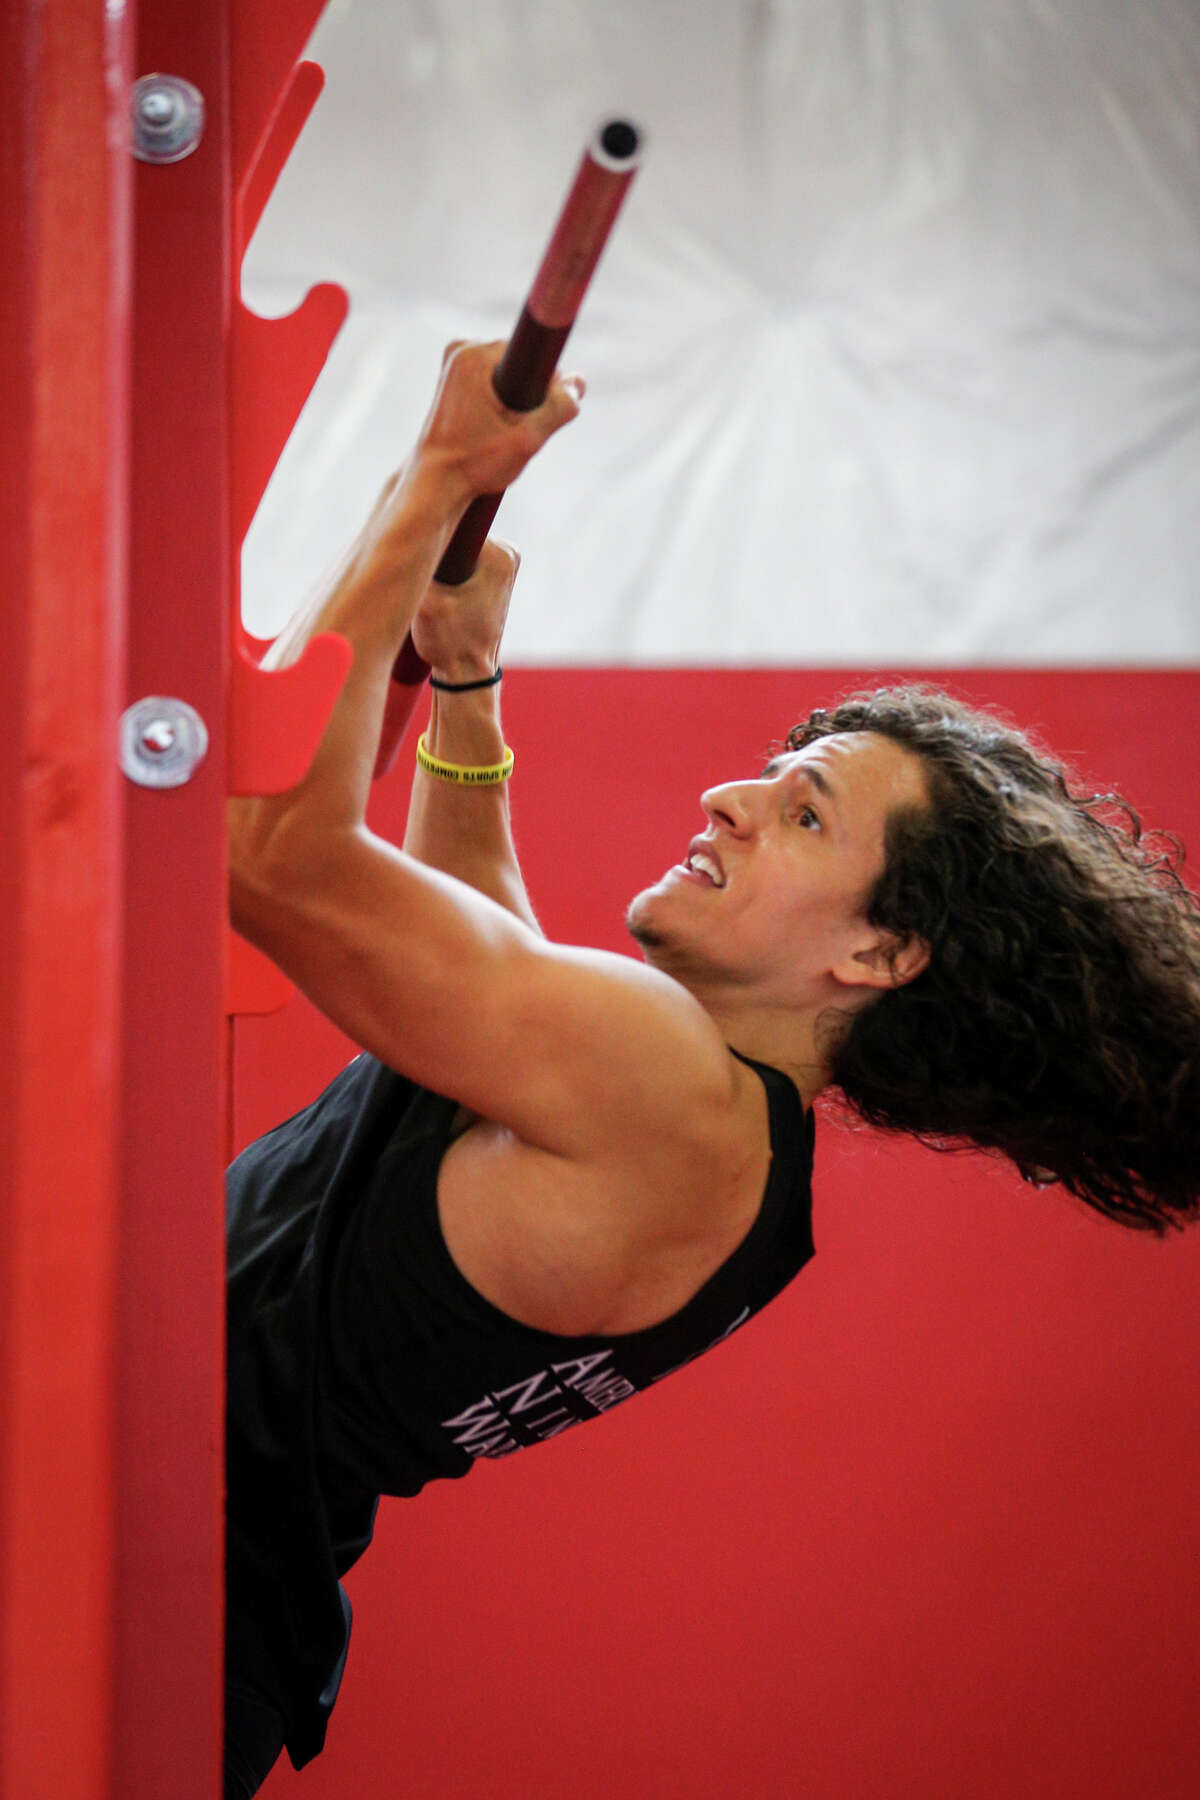 Daniel Gil, a professional Ninja Warrior athlete and two time national finalist on American Ninja Warrior, demonstrates the salmon ladder, an ascending pull up bar system, during the grand opening of Obstacle Warrior Kids on Saturday, Aug. 5, 2017, in Spring.